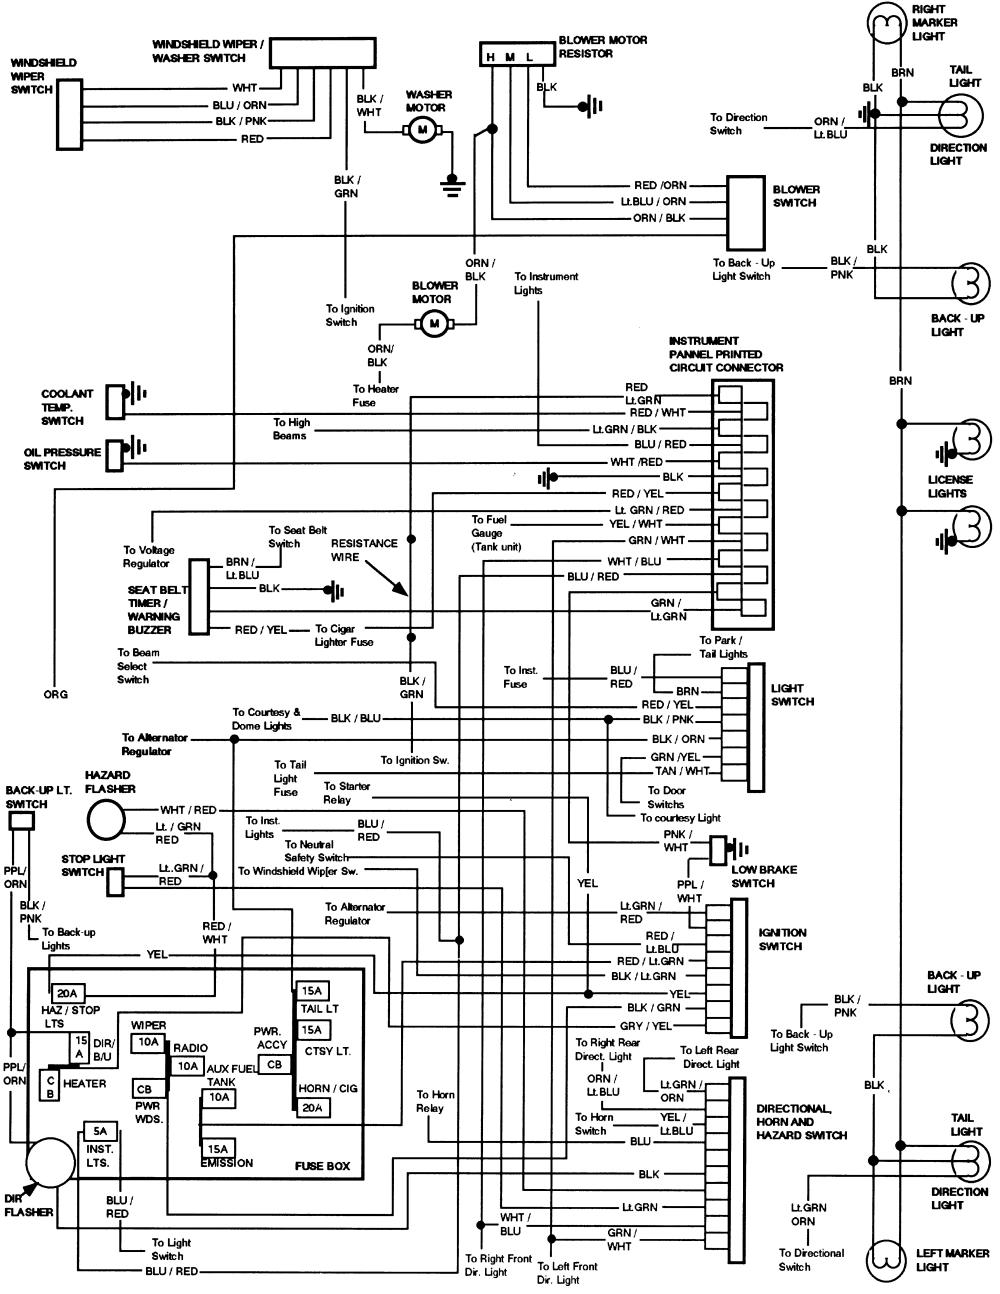 hight resolution of wiring diagram for 1994 ford f 150 wiring diagram page 1989 ford f150 radio wiring diagram 1989 ford f 150 wiring diagram